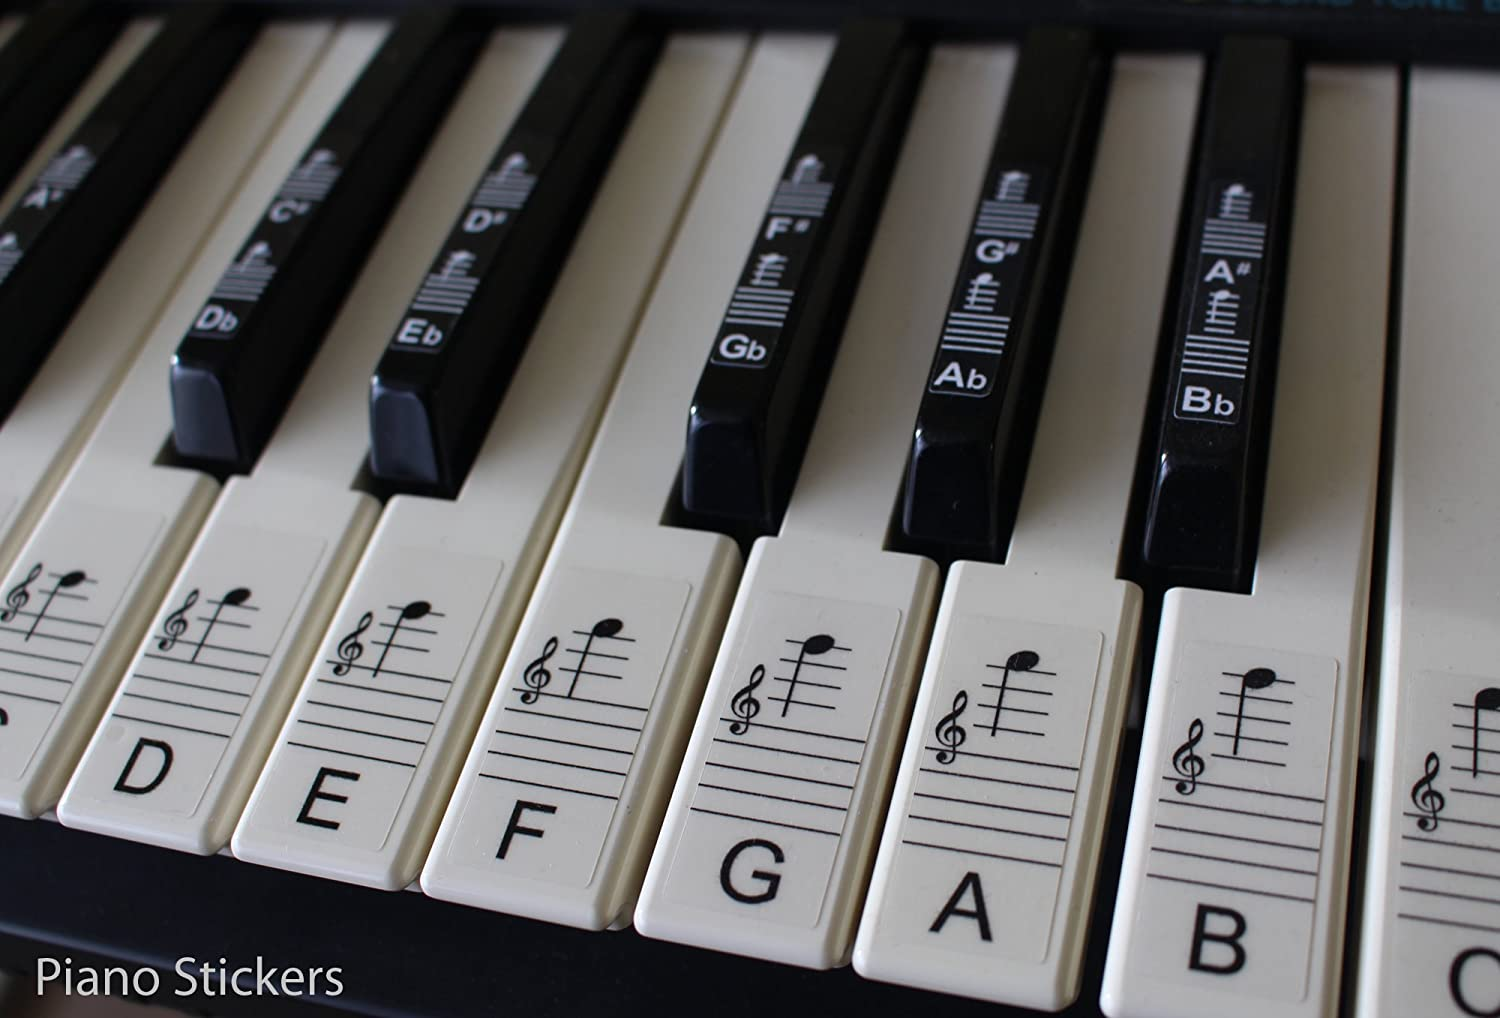 photograph relating to Piano Key Stickers Printable titled Keyboard or Piano Stickers up towards 88 Solution Mounted for the BLACK and WHITE keys, LAMINATED, Obvious, Detachable, PSBW 88